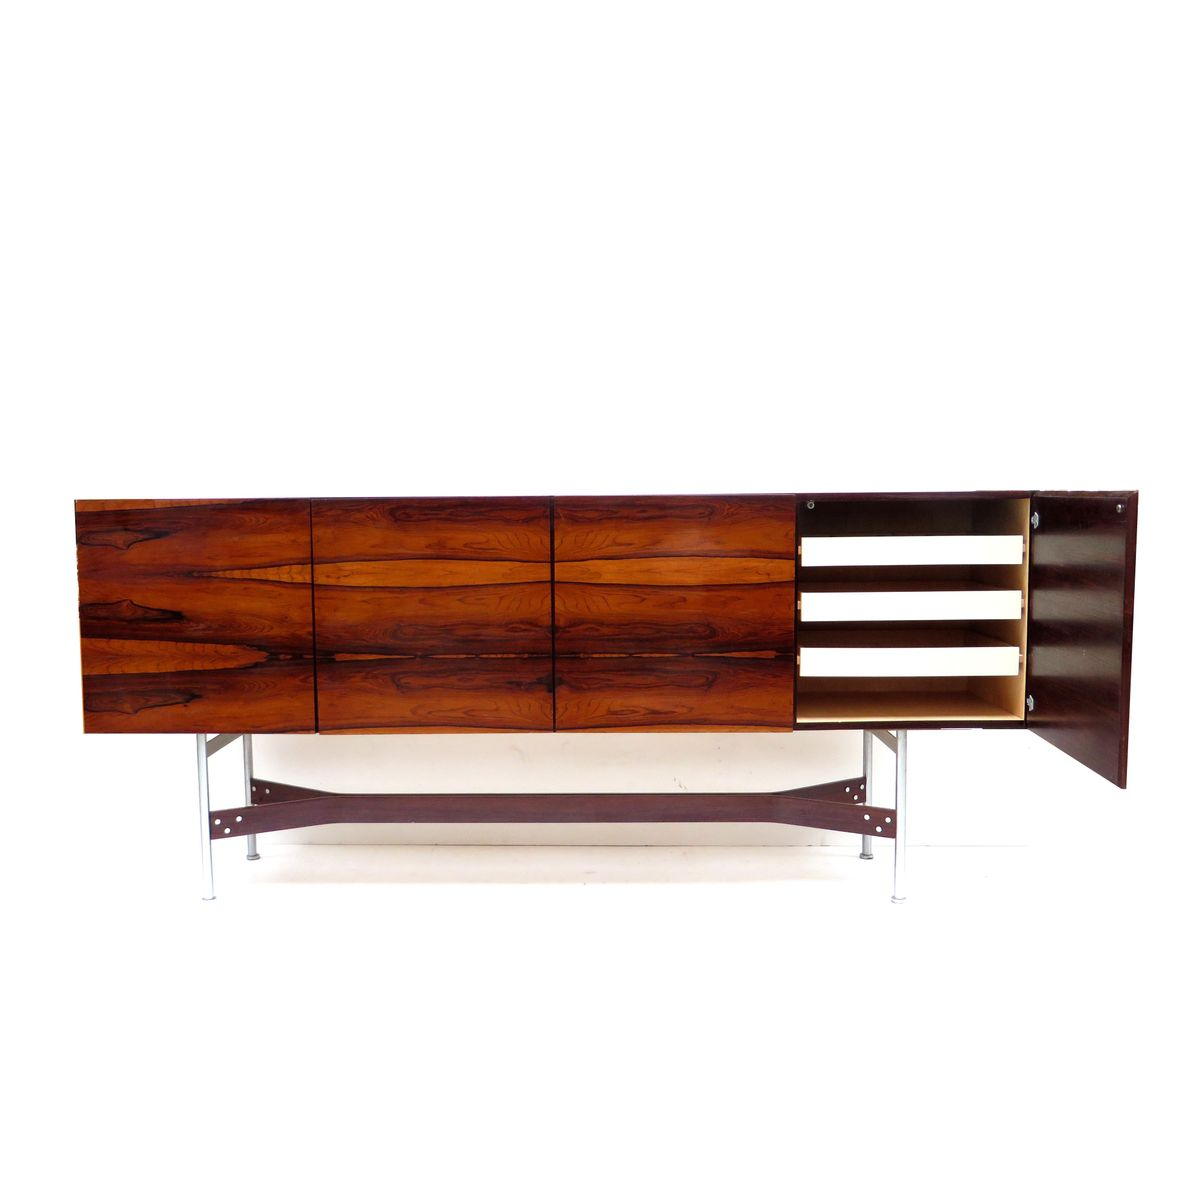 dutch glr 230 sideboard by rudolf glatzel for fristho. Black Bedroom Furniture Sets. Home Design Ideas